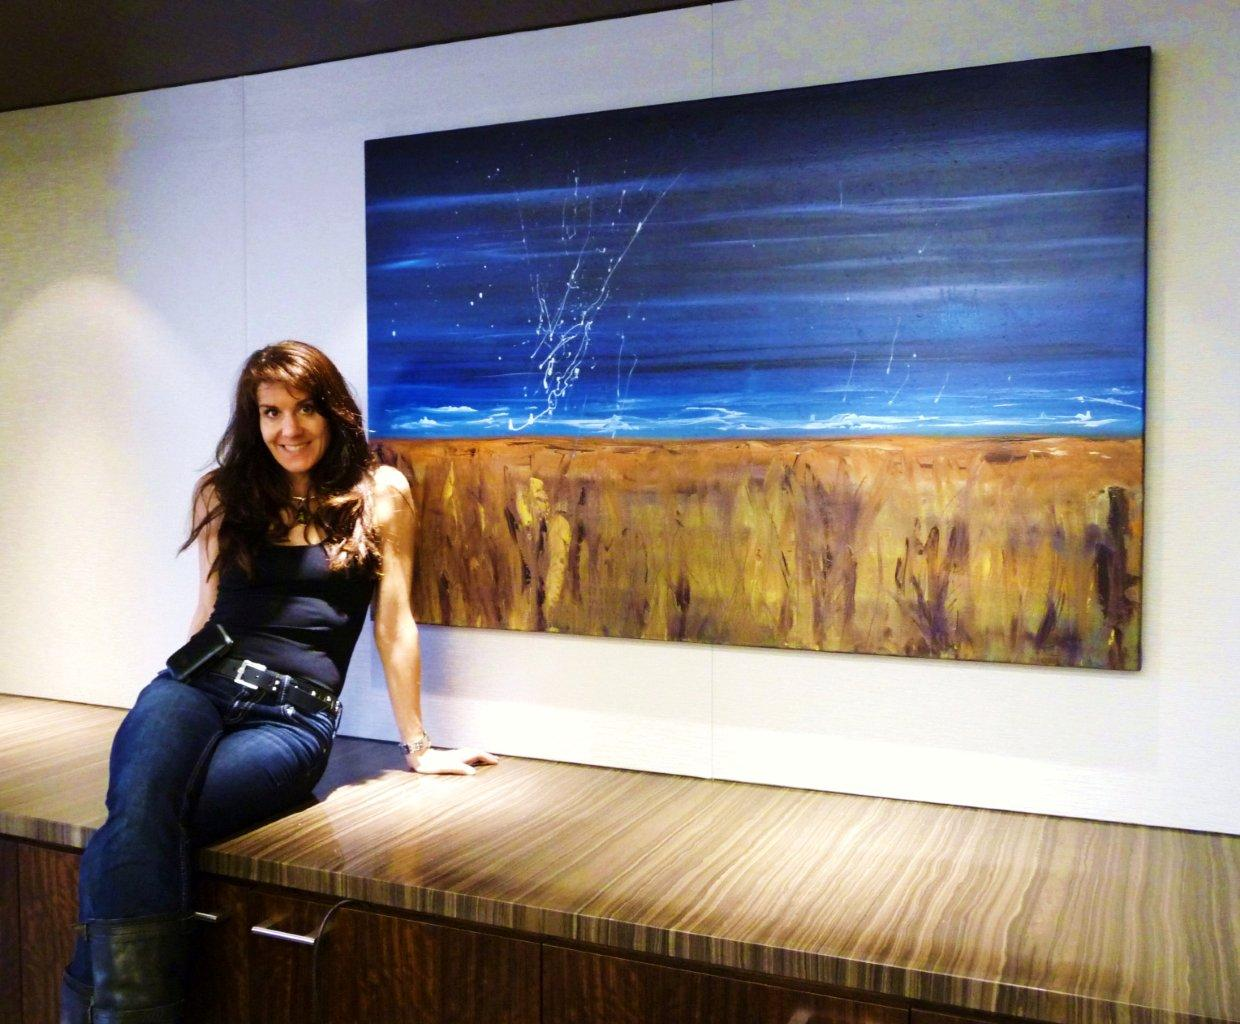 Leanne Venier with her healing blue painting, Immortal Evanescence installed in Houston Client's 2nd conference room